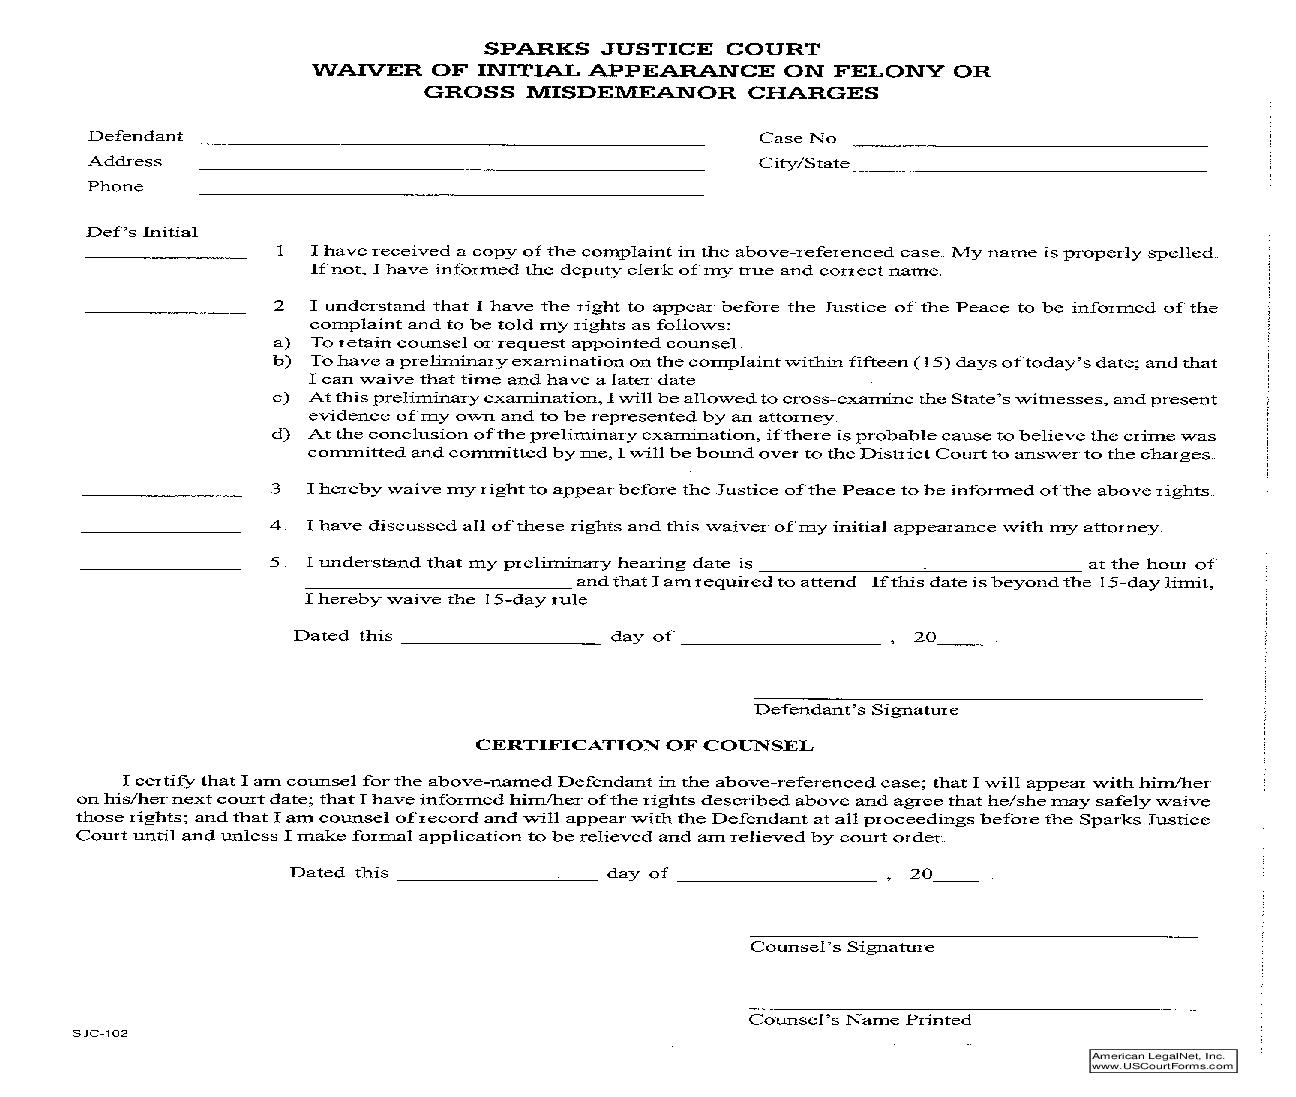 Waiver Of Initial Appearance On Felony Or Gross Misdemeanor Charges   Pdf Fpdf Doc Docx   Nevada